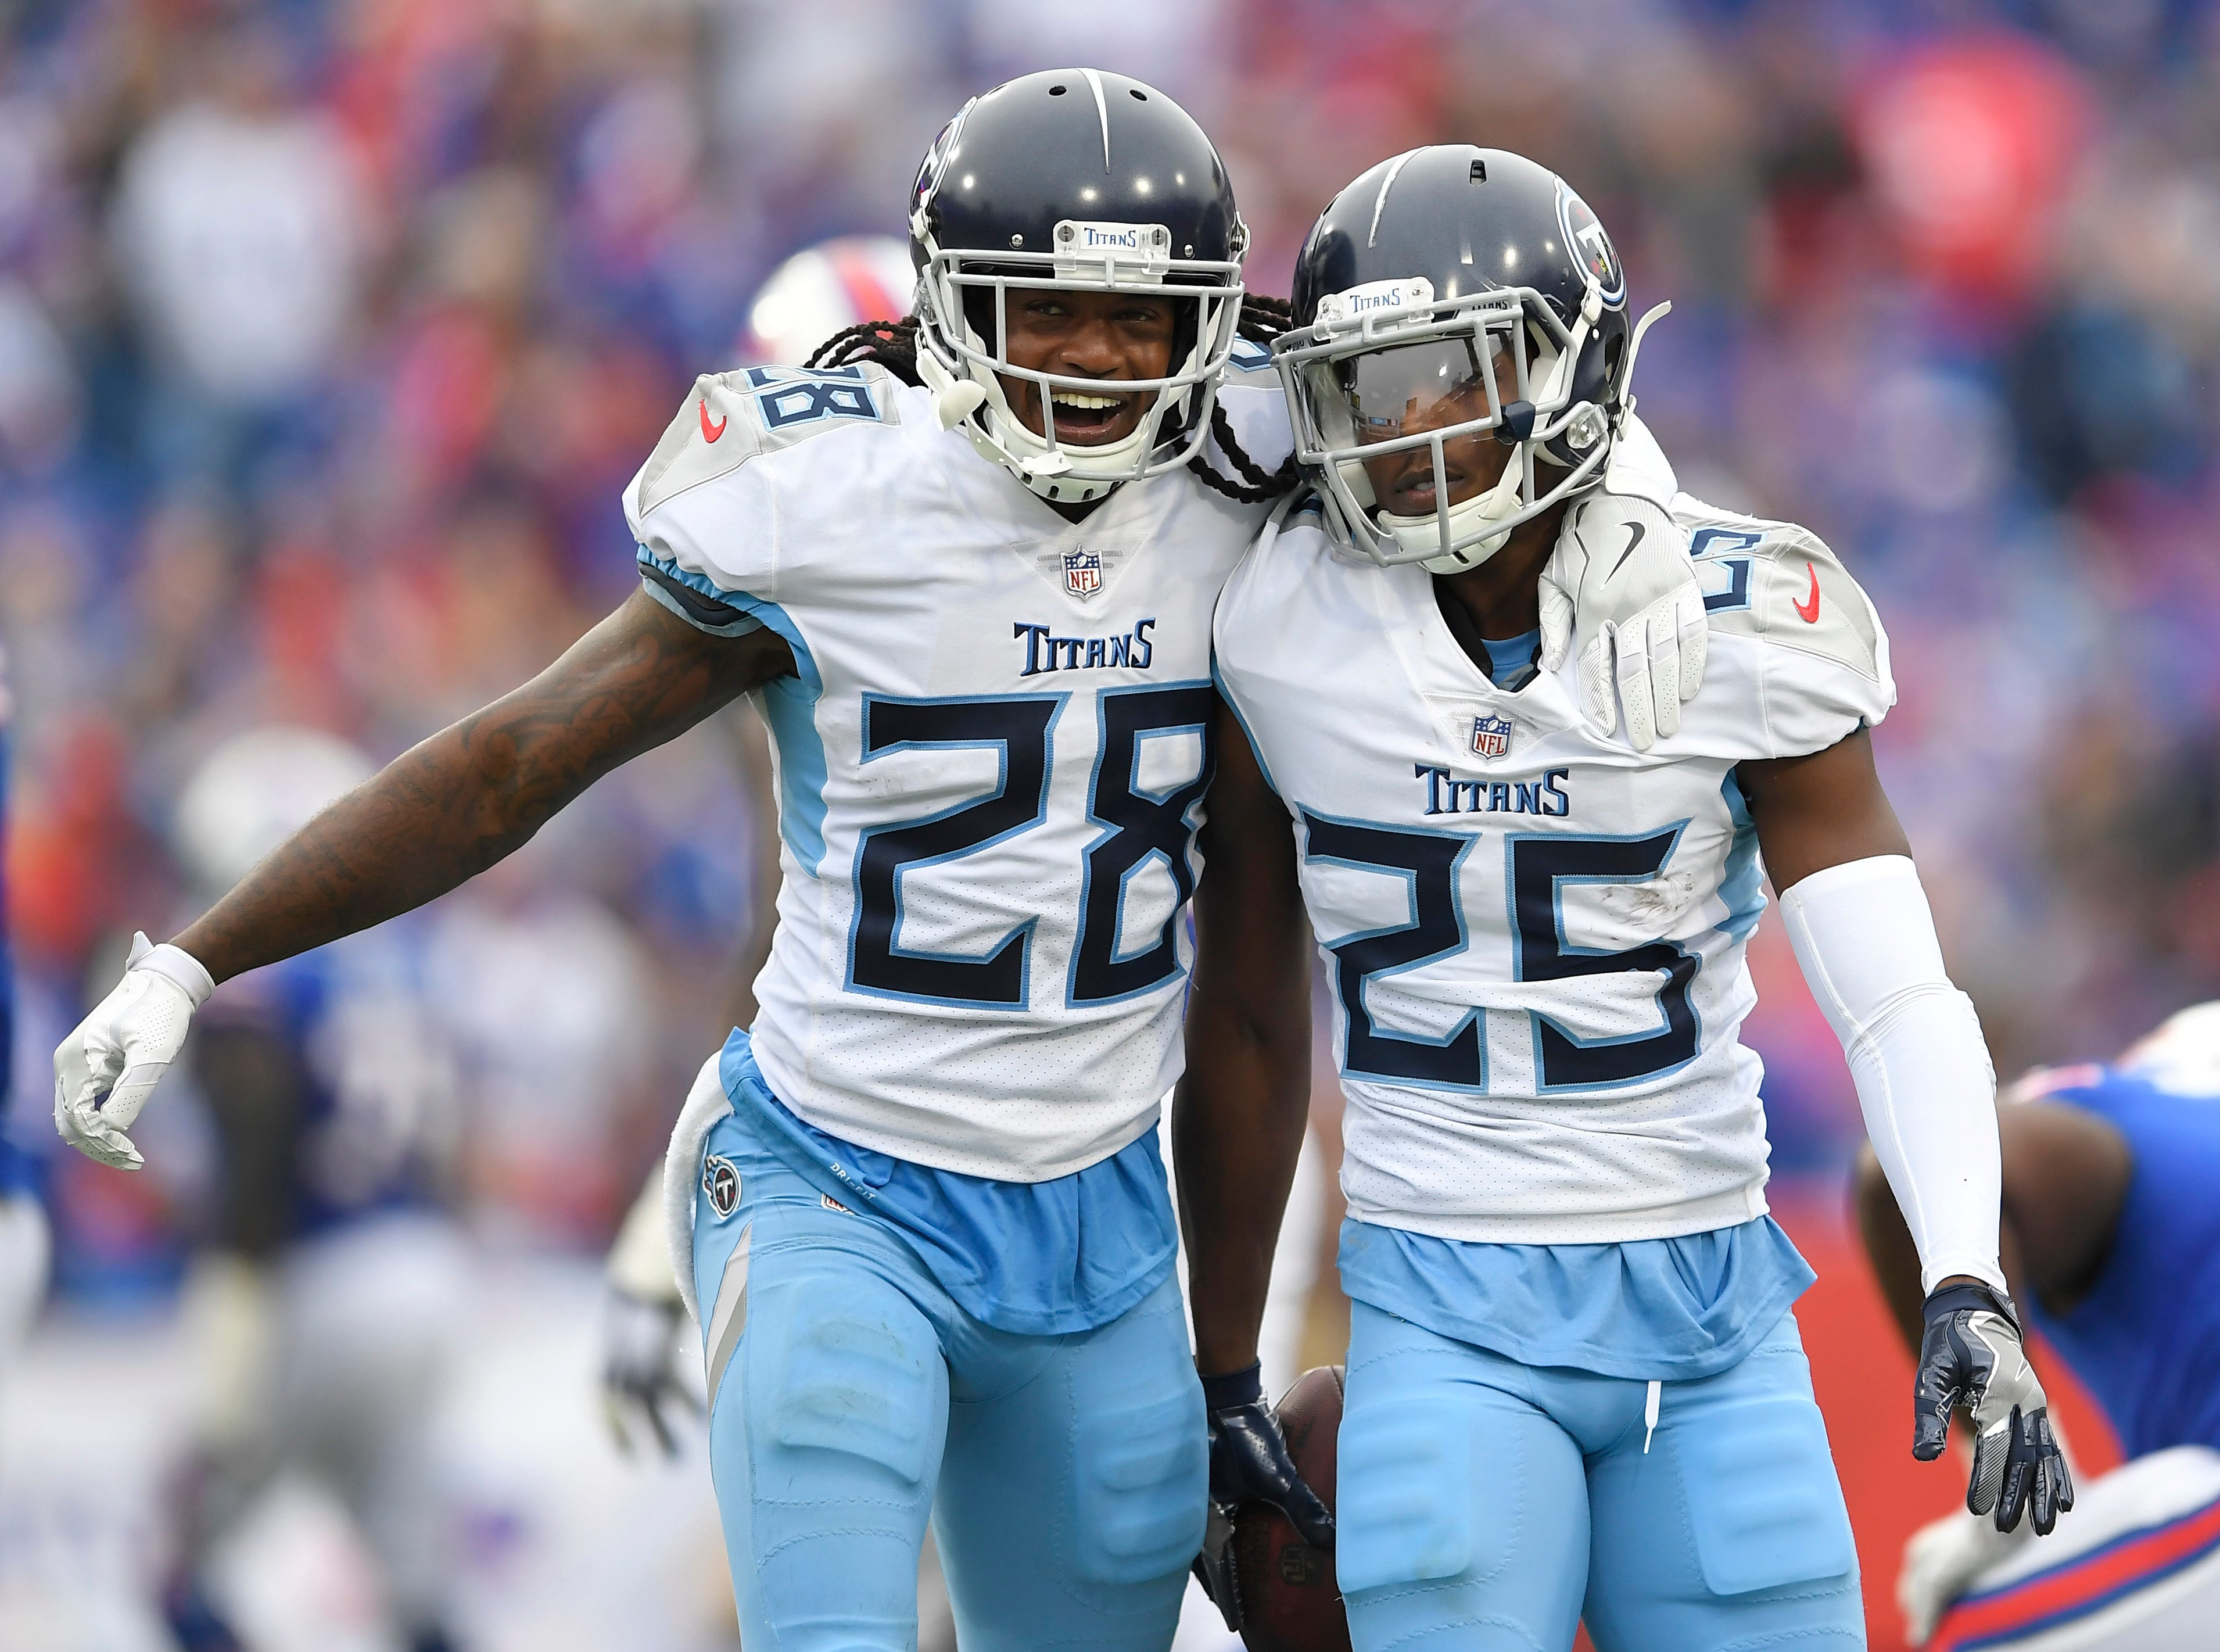 Tennessee Titans cornerback Adoree' Jackson (25) celebrates his interception on a pass from Buffalo Bills quarterback Josh Allen, not pictured, with defensive back Kendrick Lewis (28) during the second half of an NFL football game, Sunday, Oct. 7, 2018, in Orchard Park, N.Y. (AP Photo/Adrian Kraus)